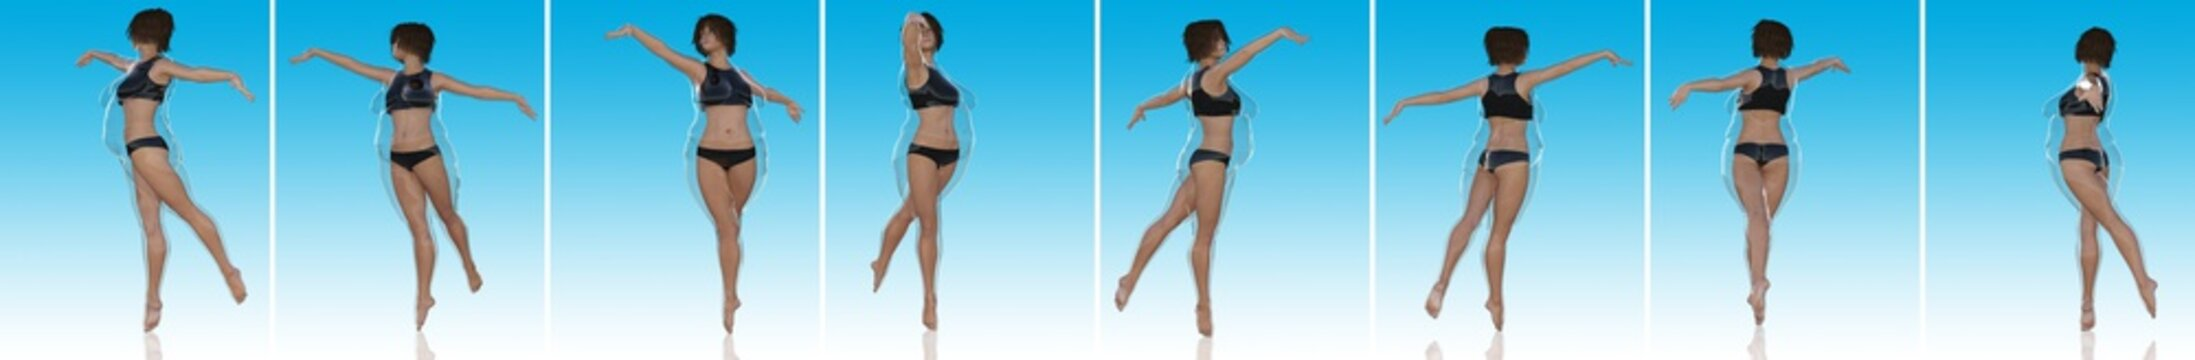 Conceptual fat overweight obese female vs slim fit healthy body after weight loss or diet with muscles thin young woman on blue. Fitness, nutrition or fatness obesity, health shape 3D illustration